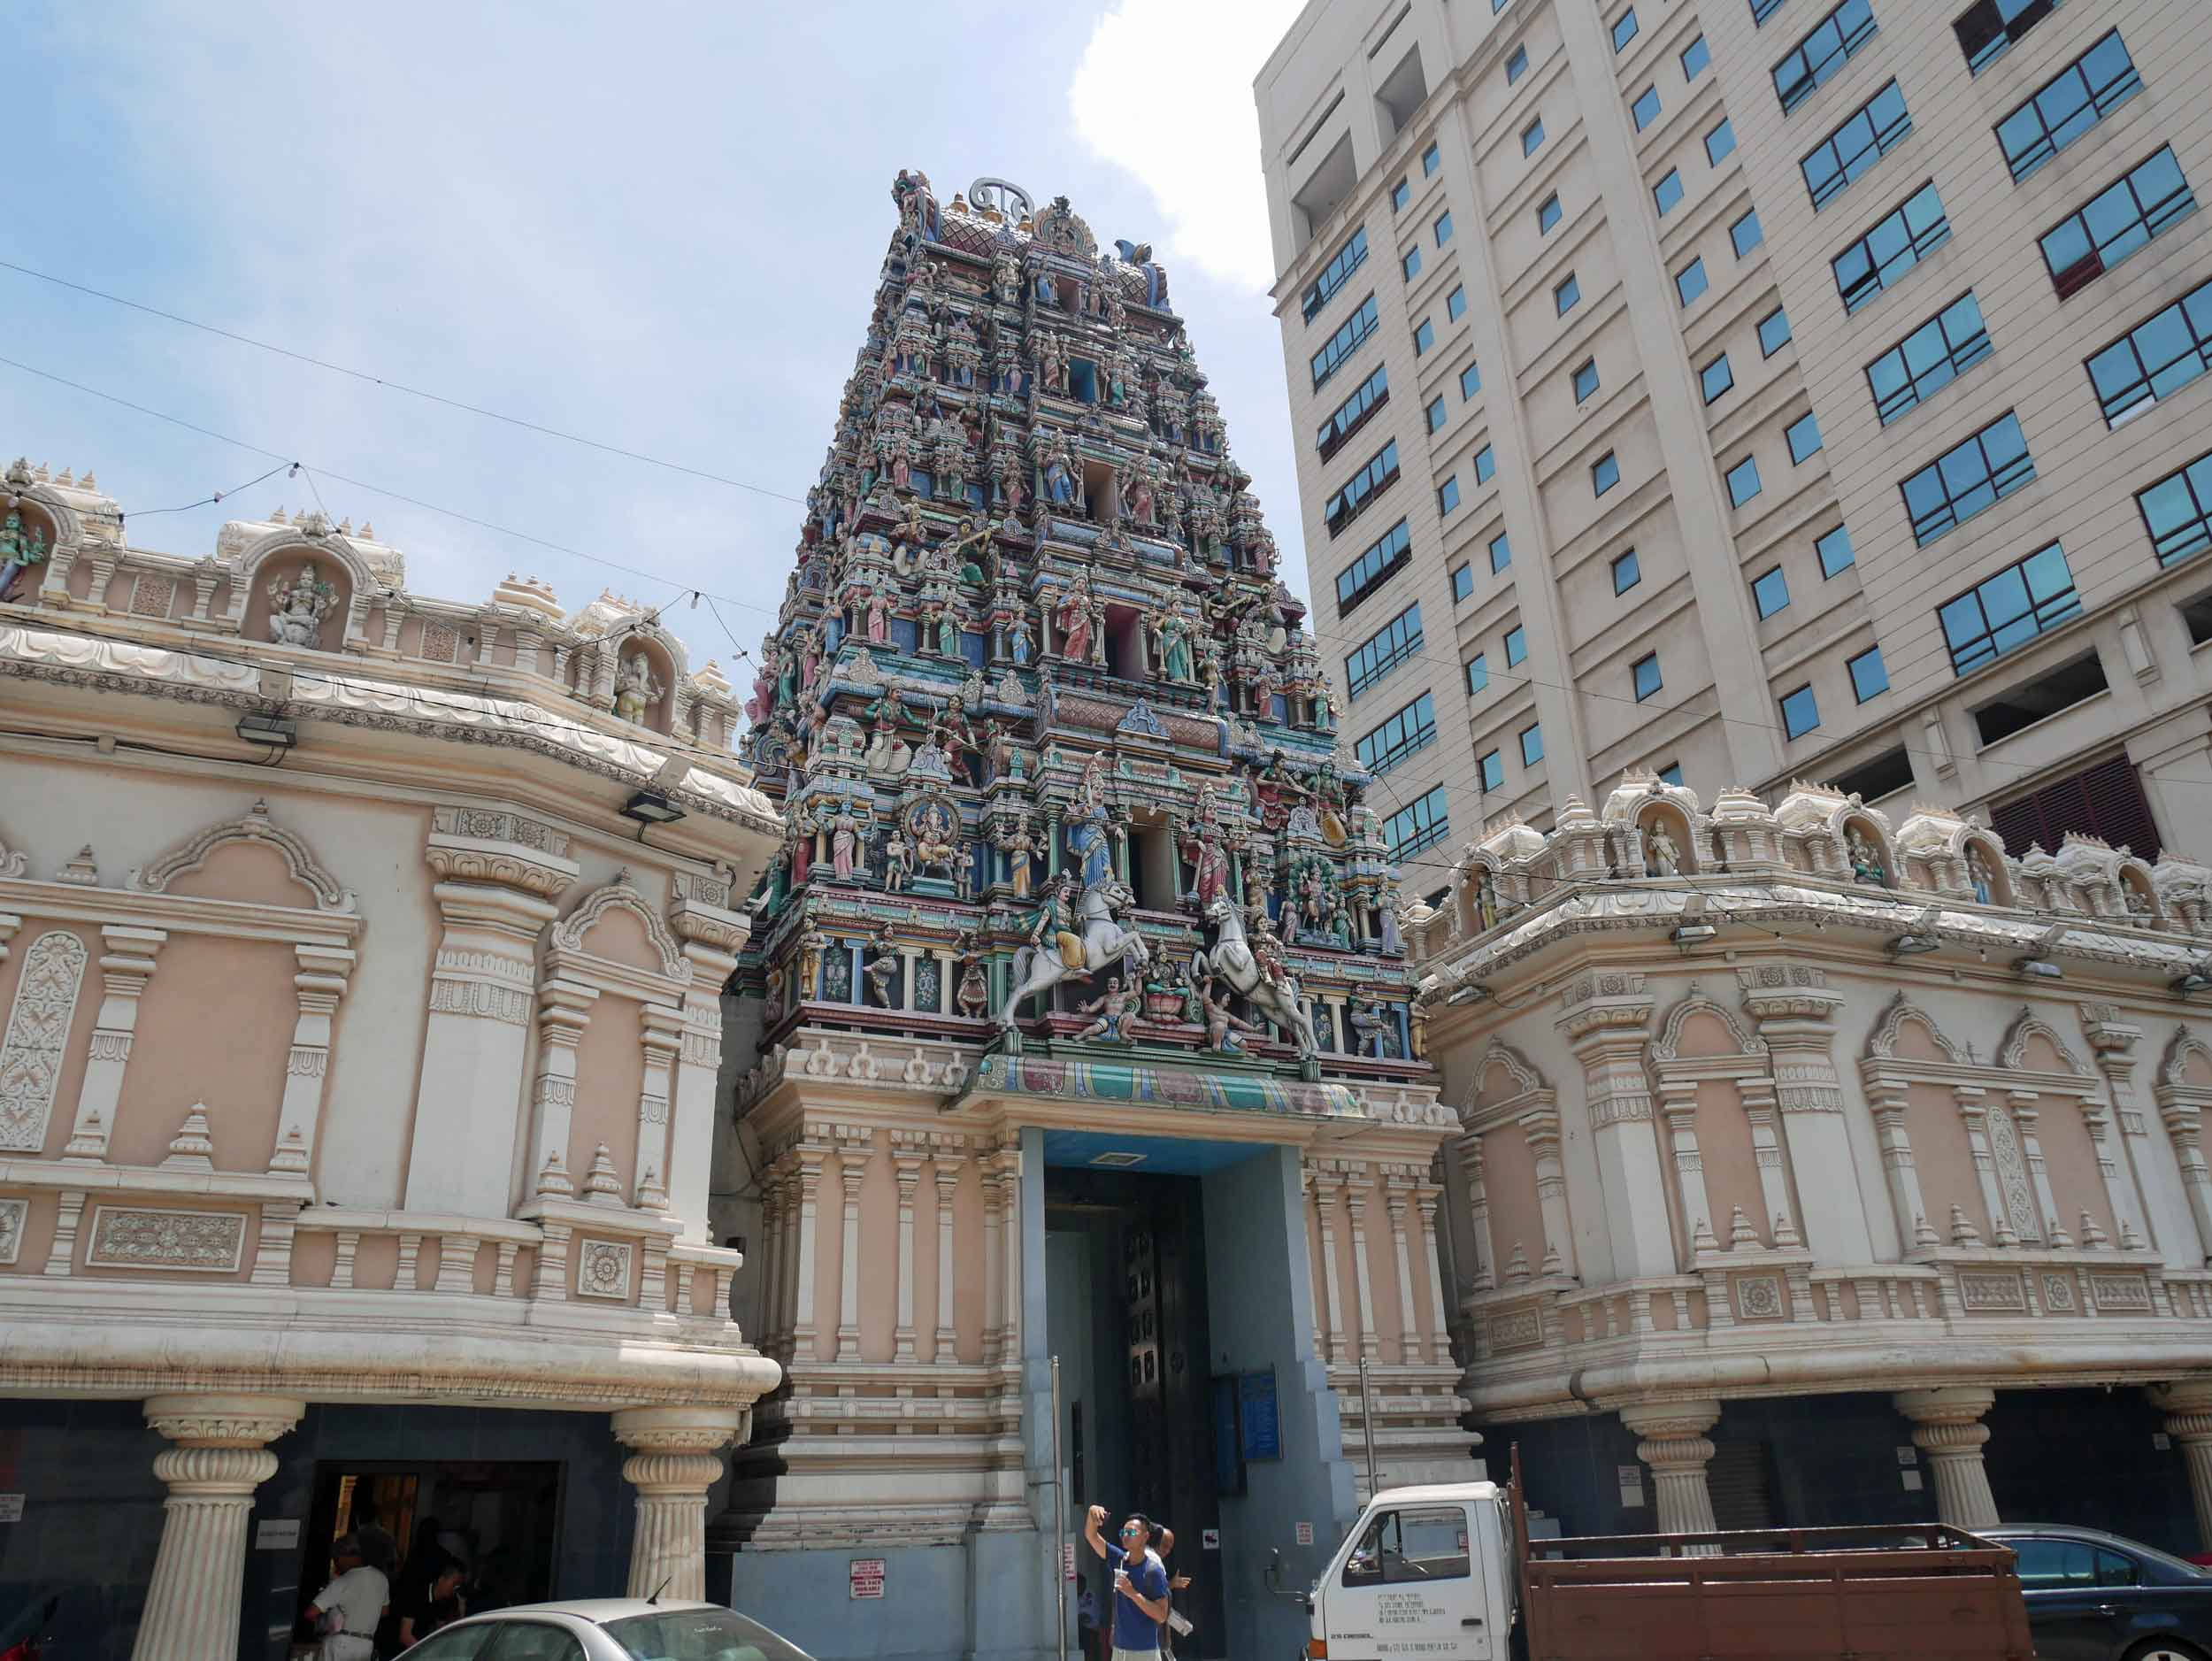 On the edge of Chinatown, sits KL's oldest Hindu temple, Sri Mahamariamman, built in the late 1800s.